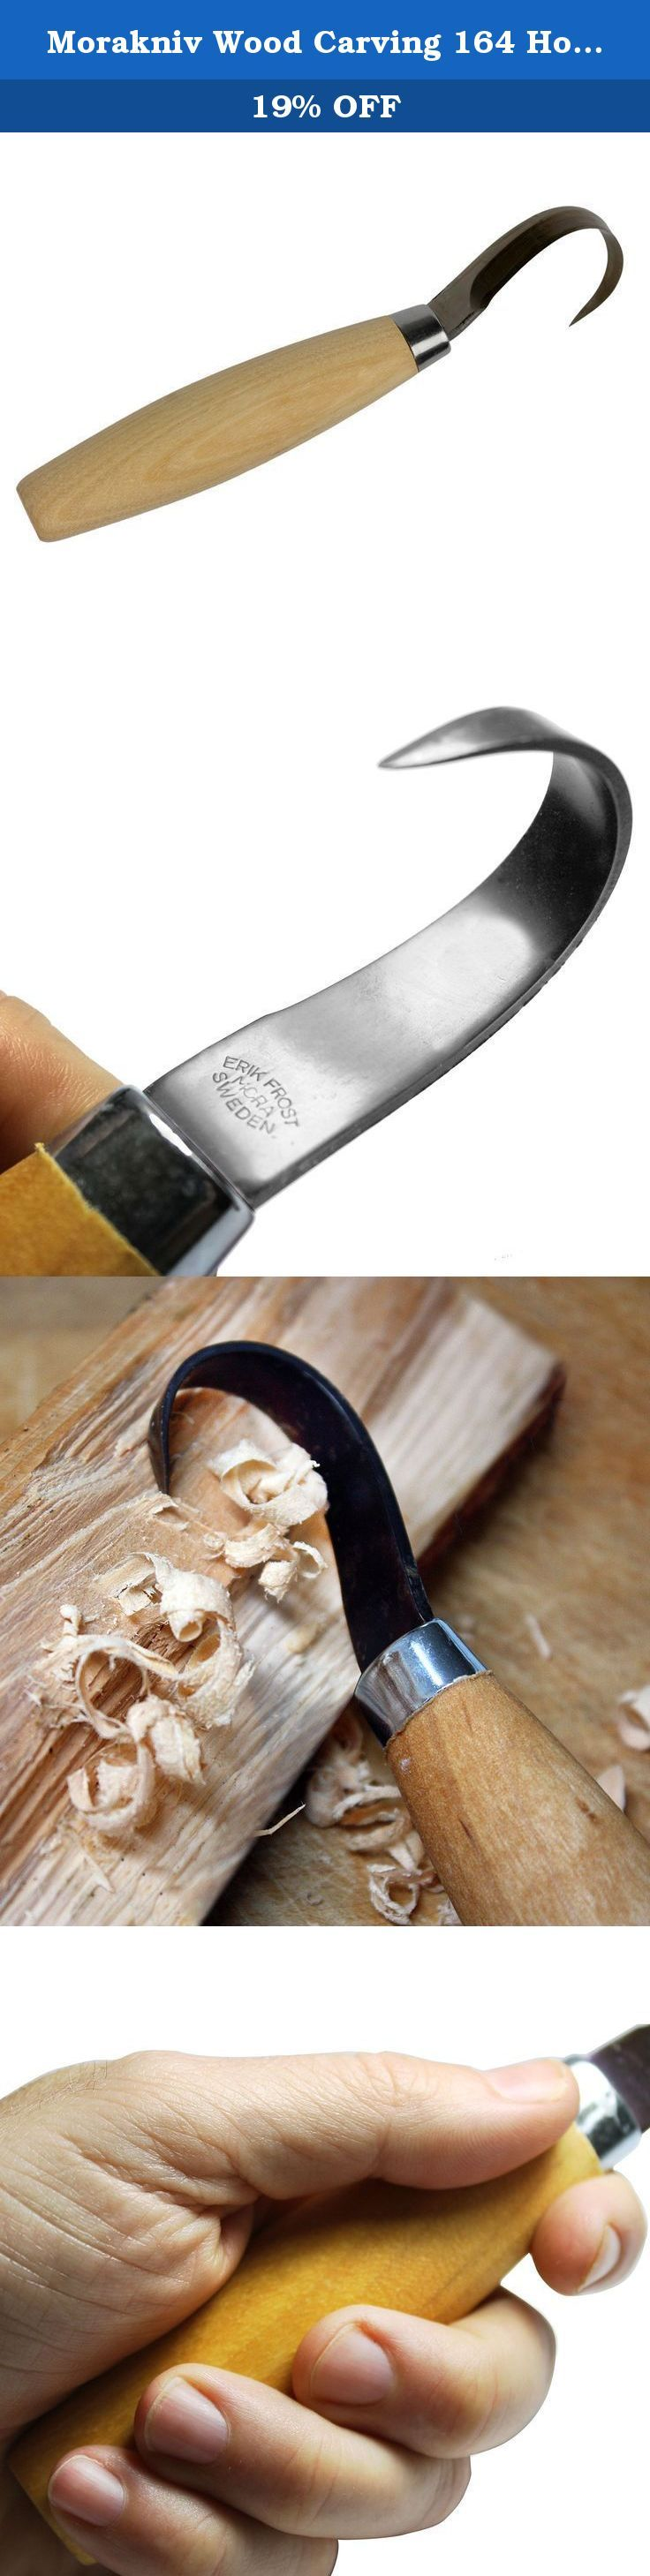 Morakniv Wood Carving 164 Hook Knife with Carbon Steel Blade. Generations of carpenters and wood carvers have appreciated the precision tools made by Morakniv in Mora, Sweden since 1891. Professionals worldwide trust the quality materials and fine craftsmanship of a Morakniv knife as they feature ergonomically-designed handles and employ premium-quality knife steel that is optimally adapted to the task for which the knife is intended. The Morakniv Wood Carving 164 Hook Knife for spoon and...